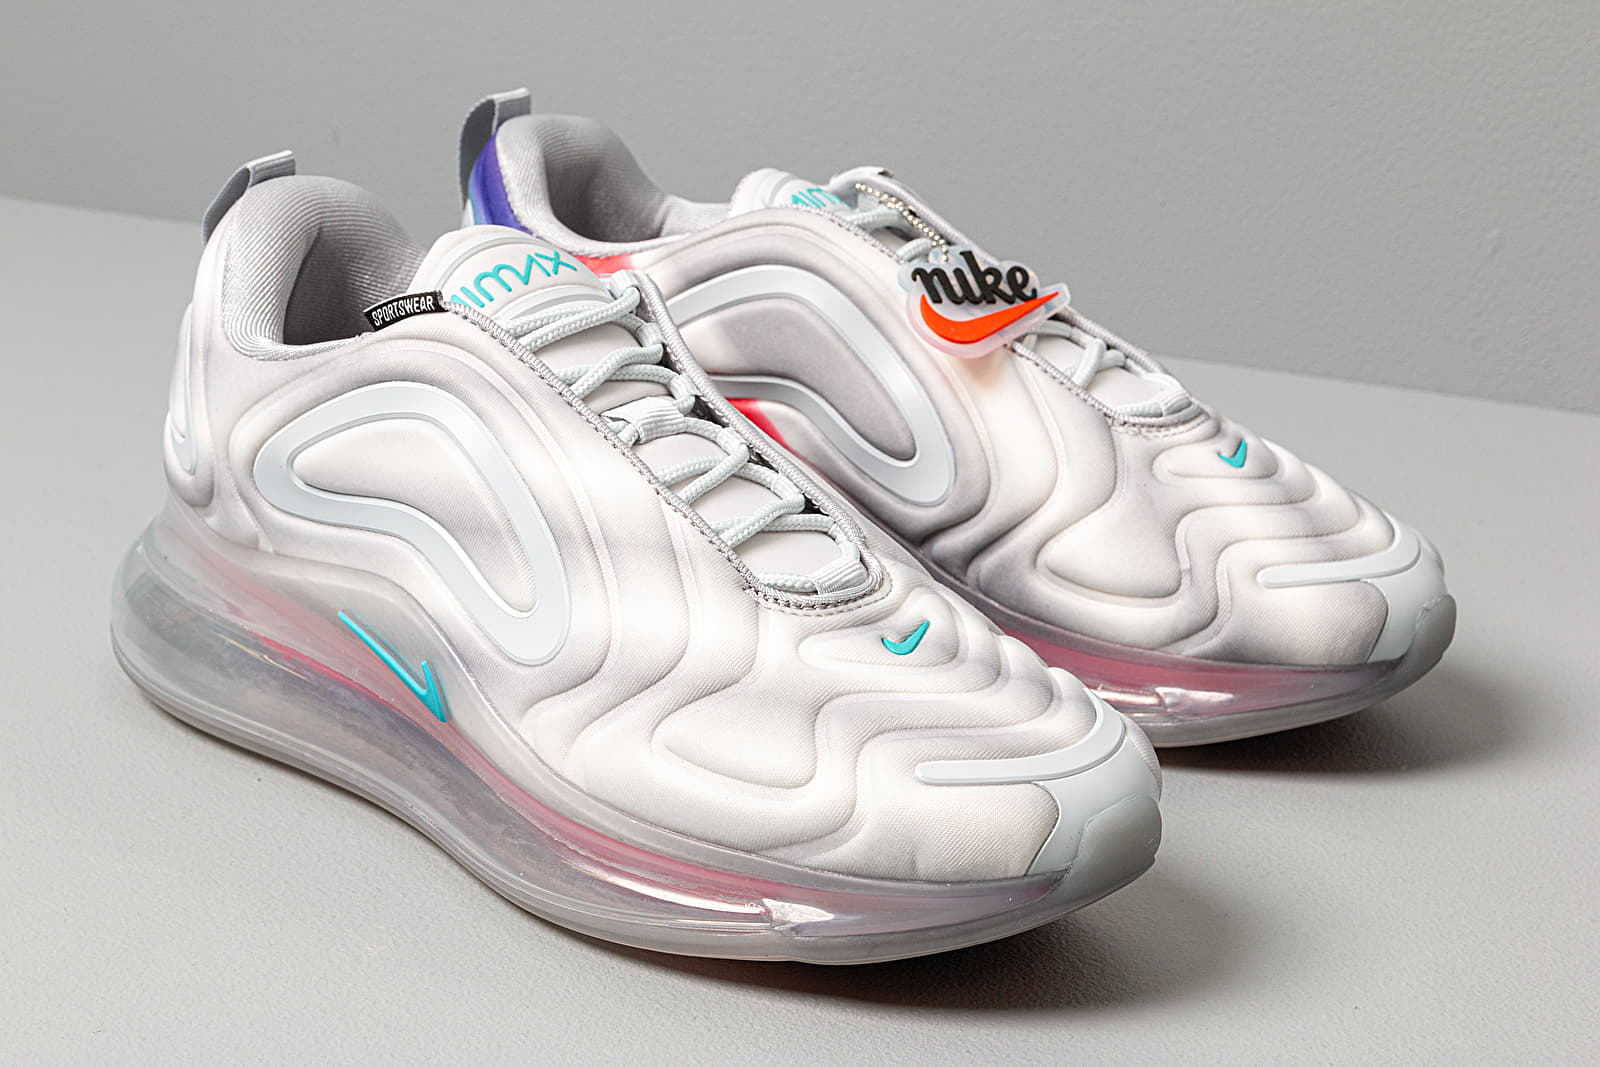 ambiente Parecer Caligrafía  Men's shoes Nike Air Max 720 Wolf Grey/ Teal Nebula-Red Orbit-White